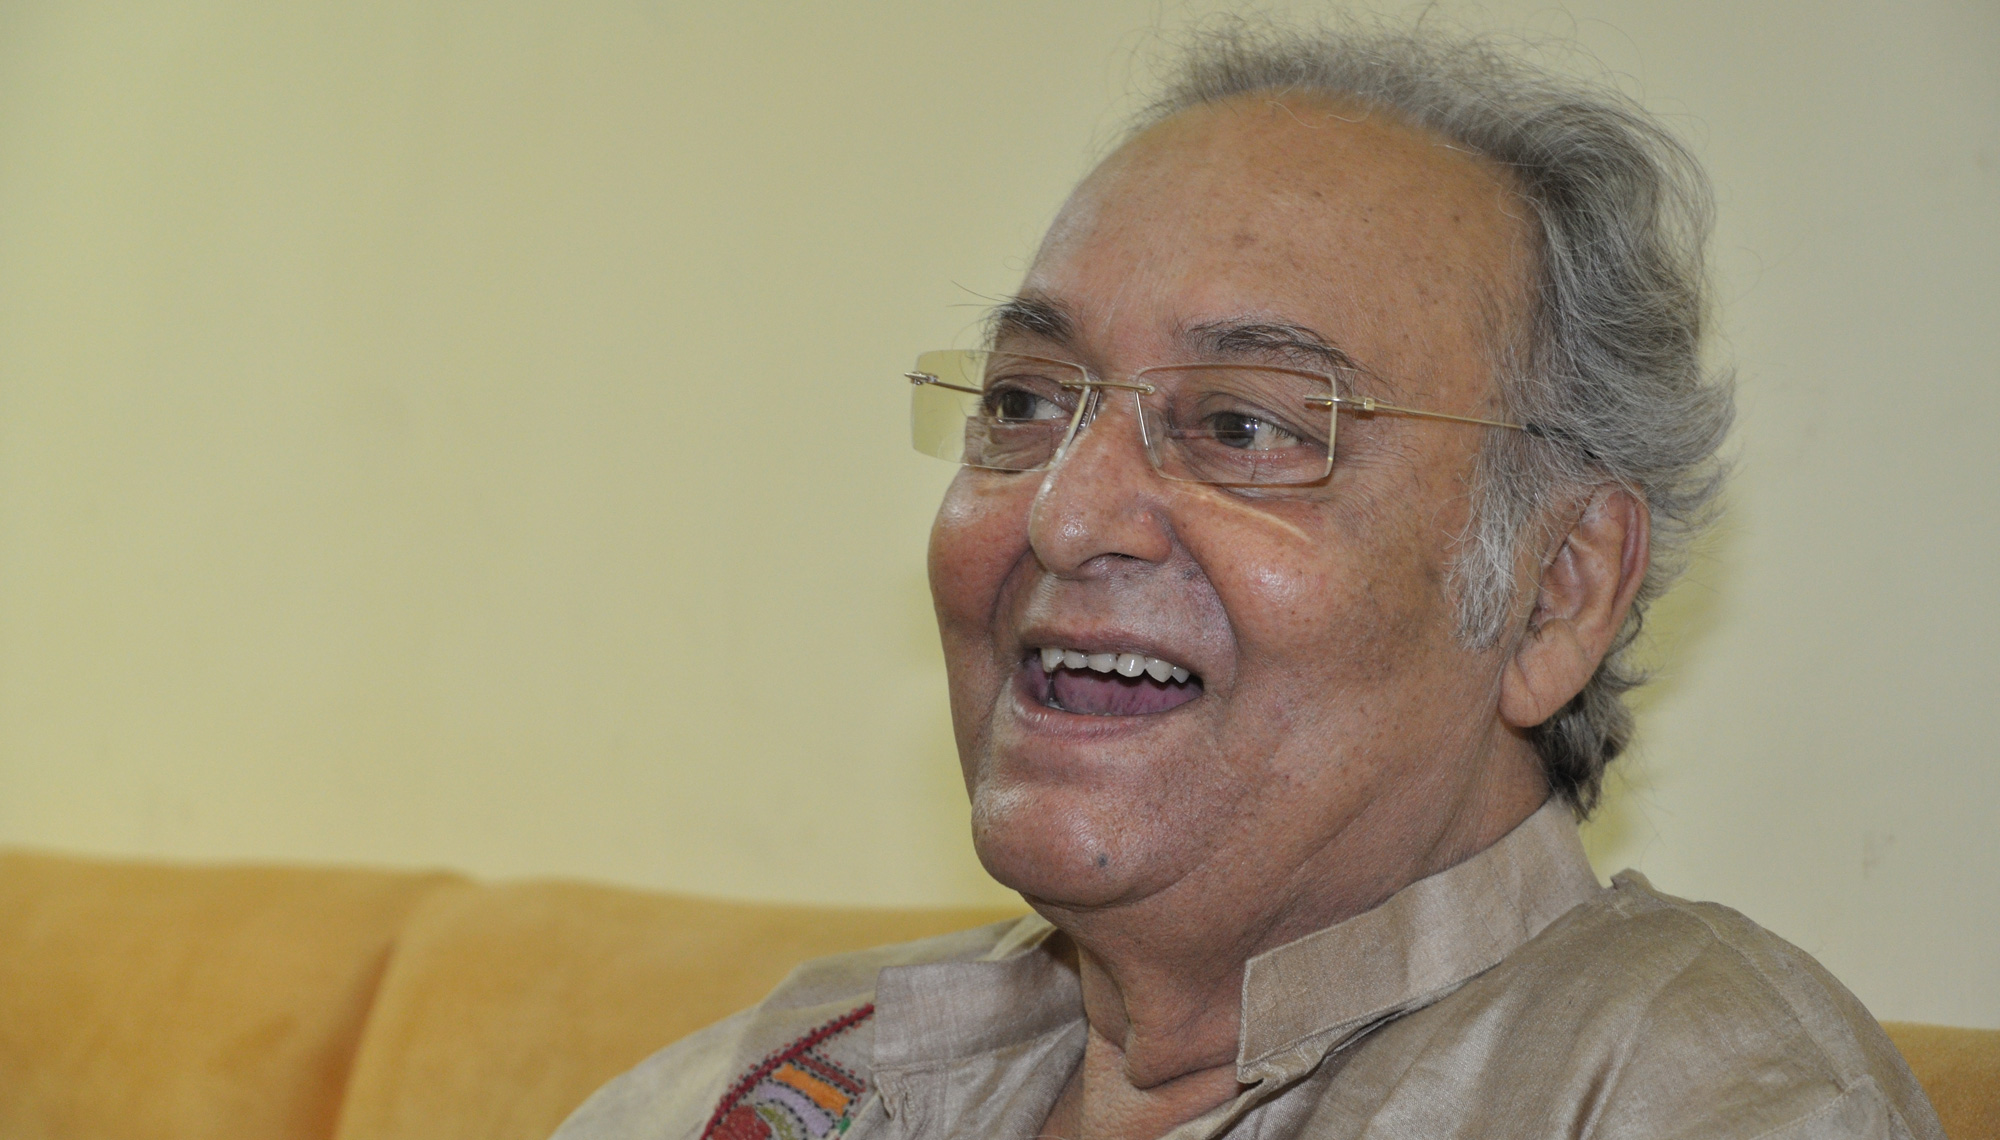 Several actors have essayed the role of Pheluda, but the average Bengali associates it with Soumitra Chatterjee